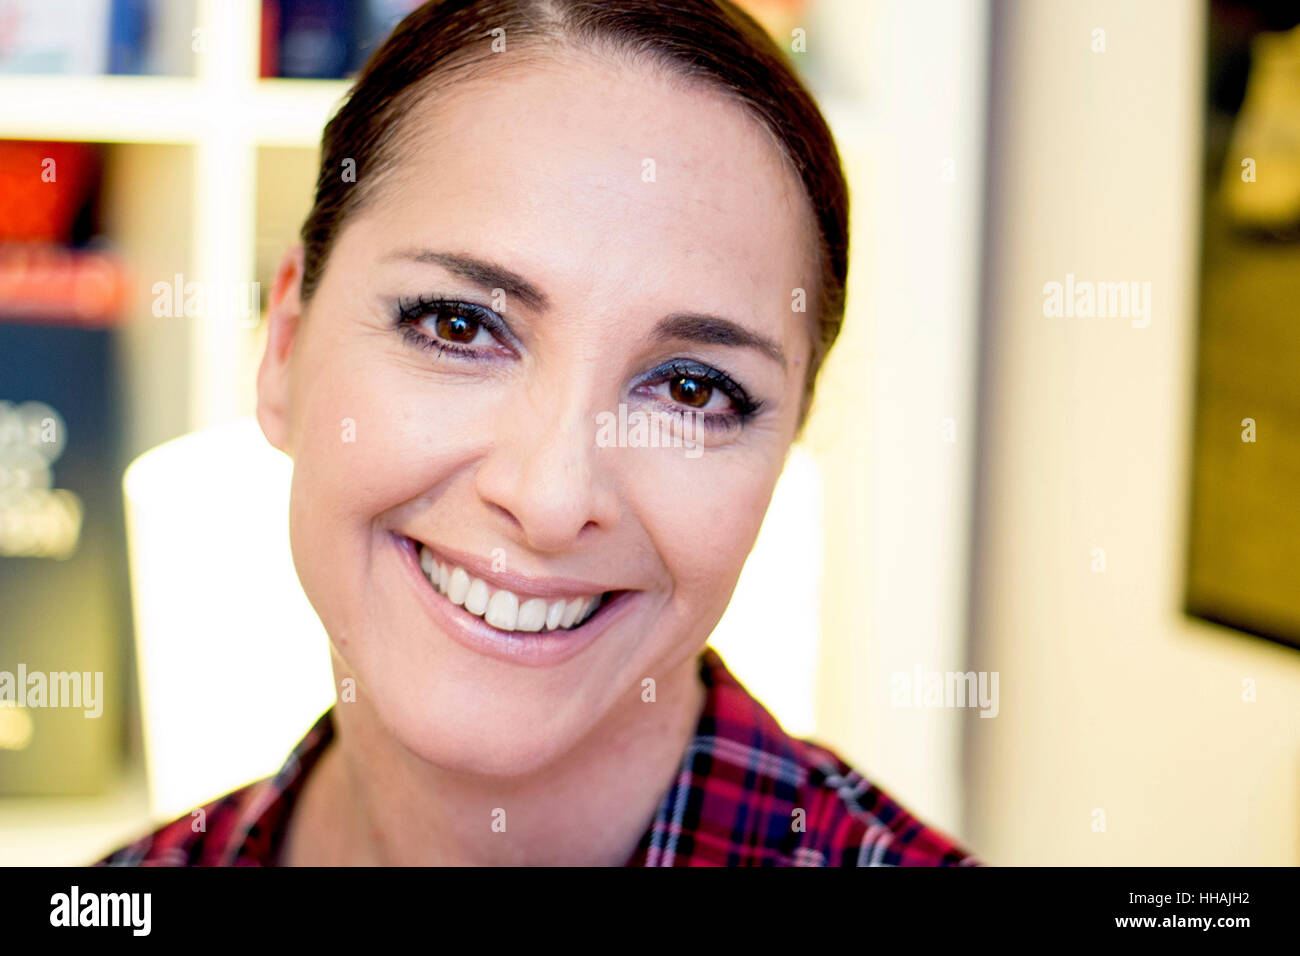 Portrait of a woman smiling, heureux, looking at camera, milieu de l'âge. Photo Stock